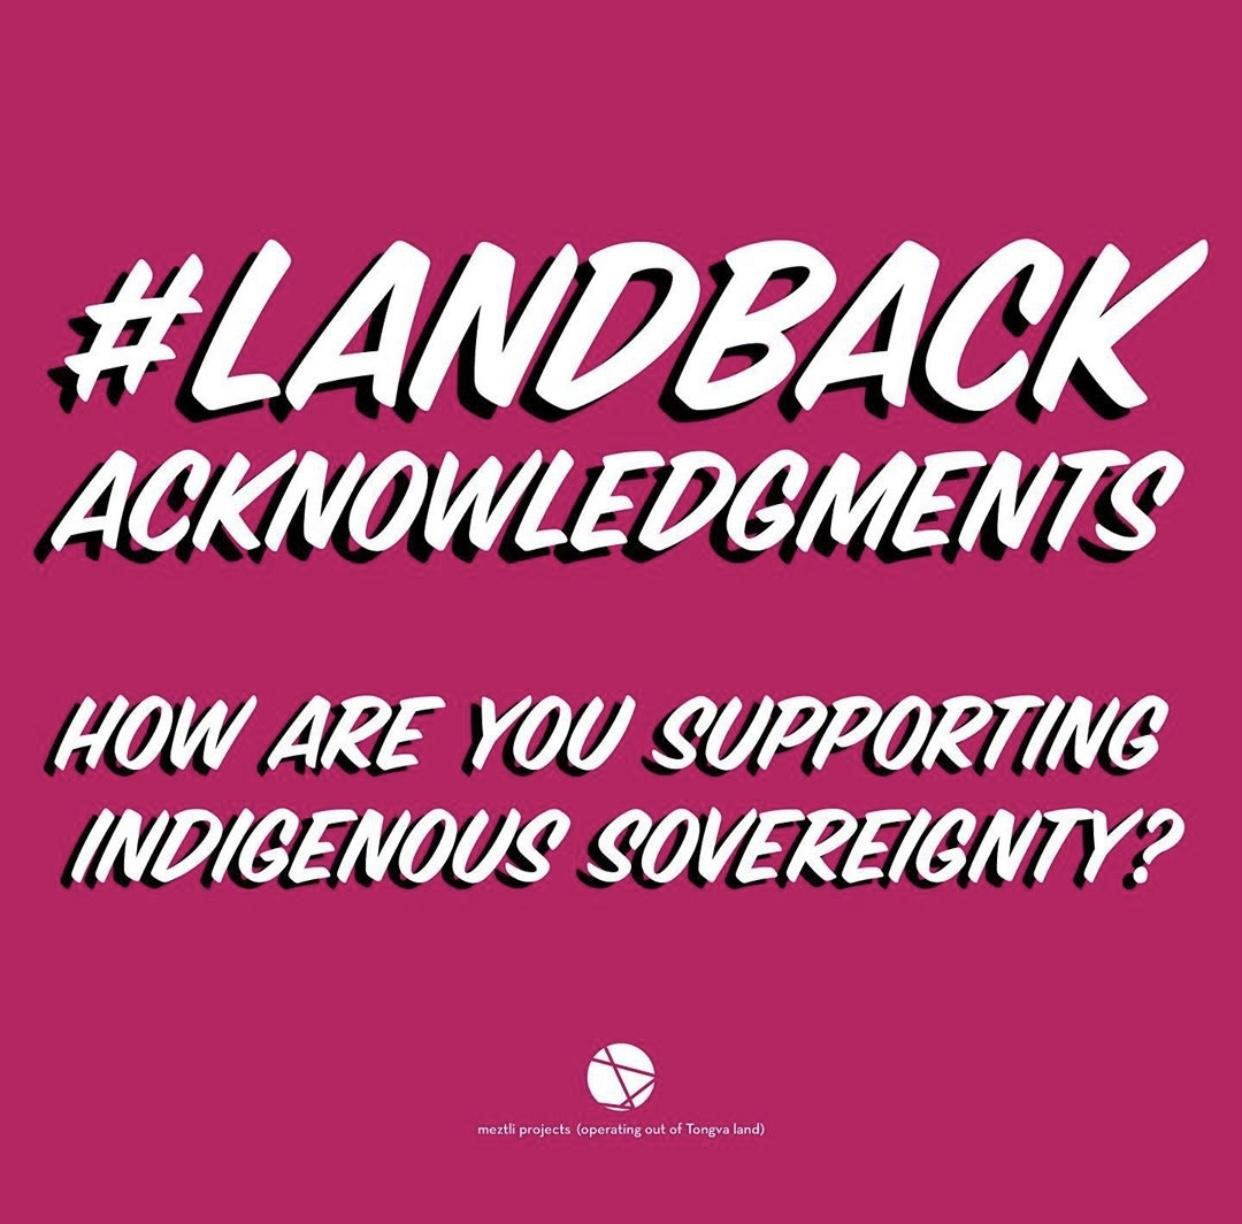 ] A pink background with white letters reads the following: #LANDBACK ACKNOWLEDGMENTS, How are you supporting indigenous sovereignty?